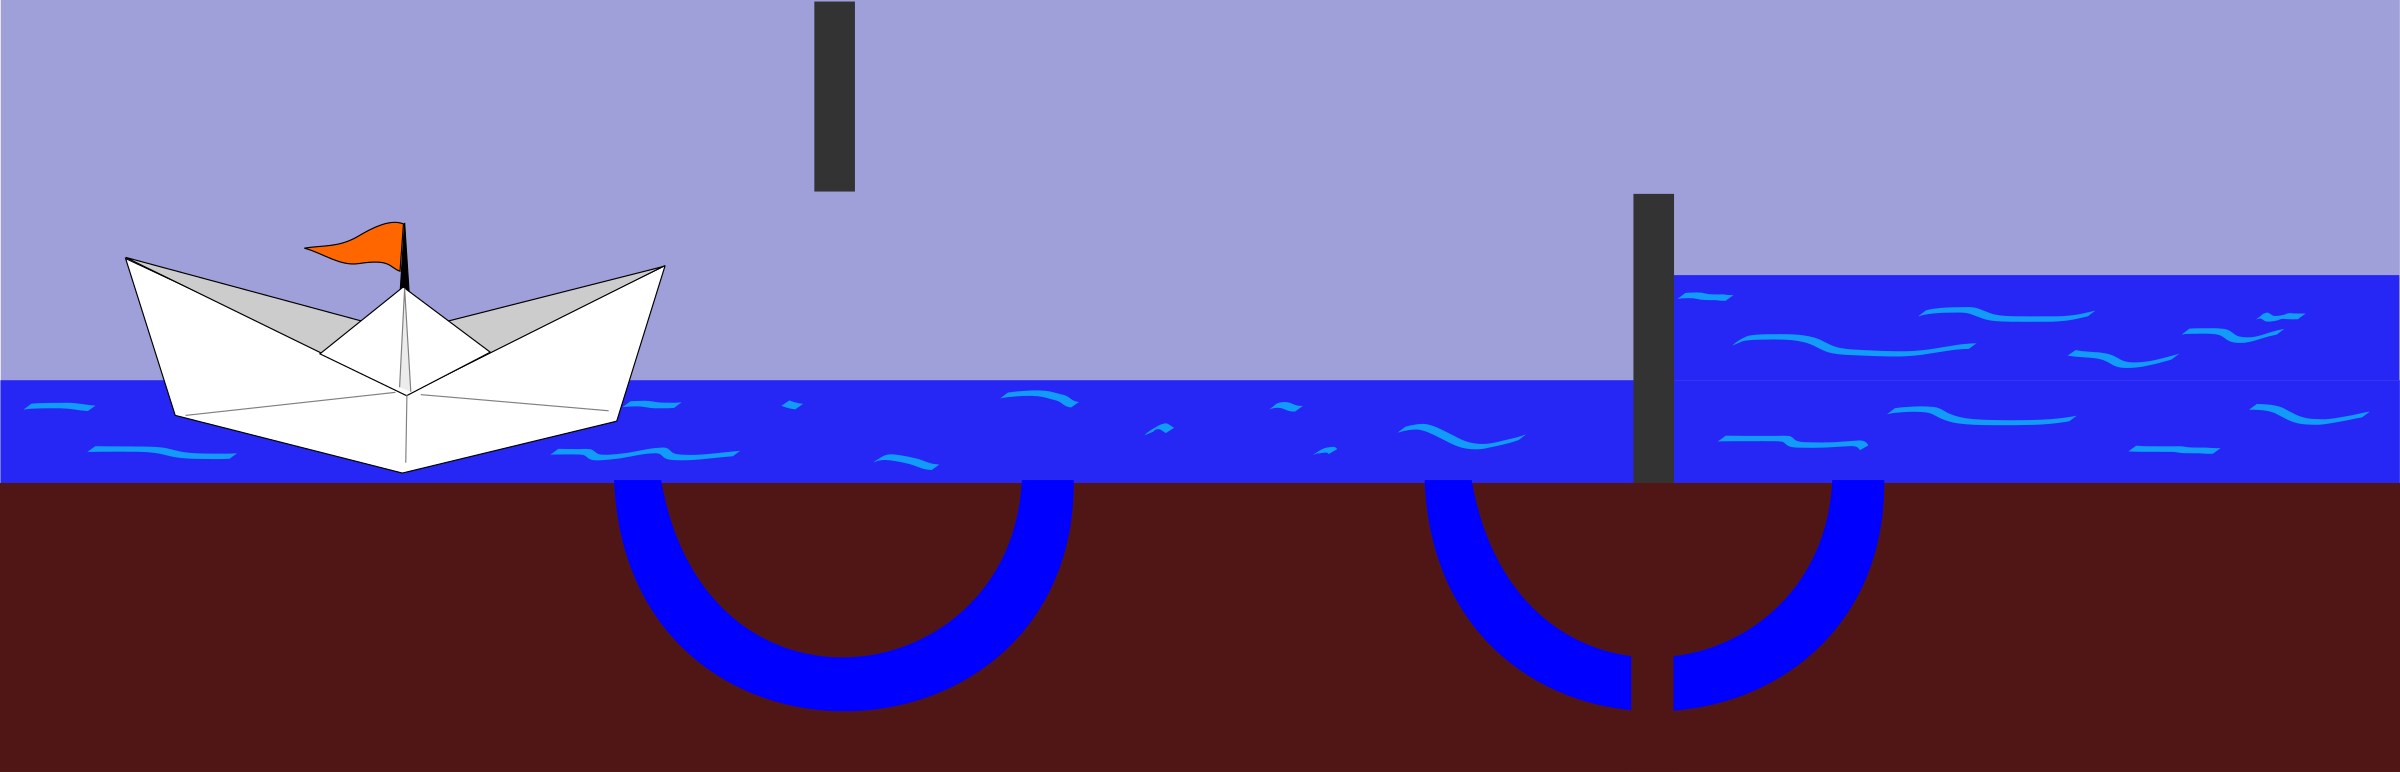 Lock clipart blue. Working of a sluice